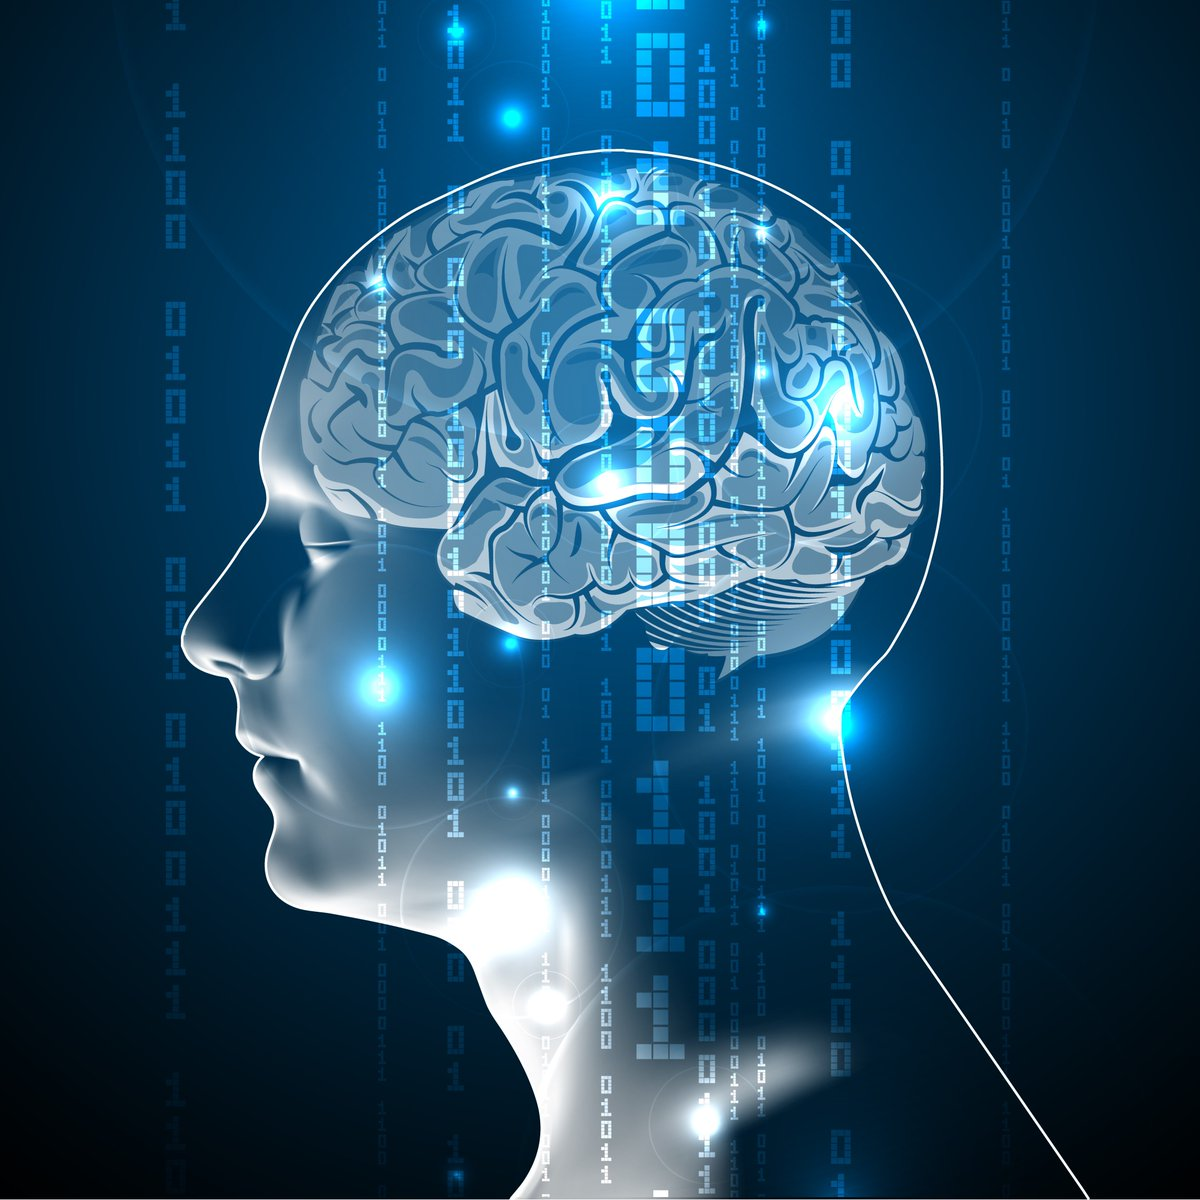 Artificial intelligence: Three common misconceptions #AI #MachineLearning #bigdata #ML #robotics #tech   http://www. itproportal.com/features/artif icial-intelligence-three-common-misconceptions/ &nbsp; … <br>http://pic.twitter.com/tL0h4vTeWn